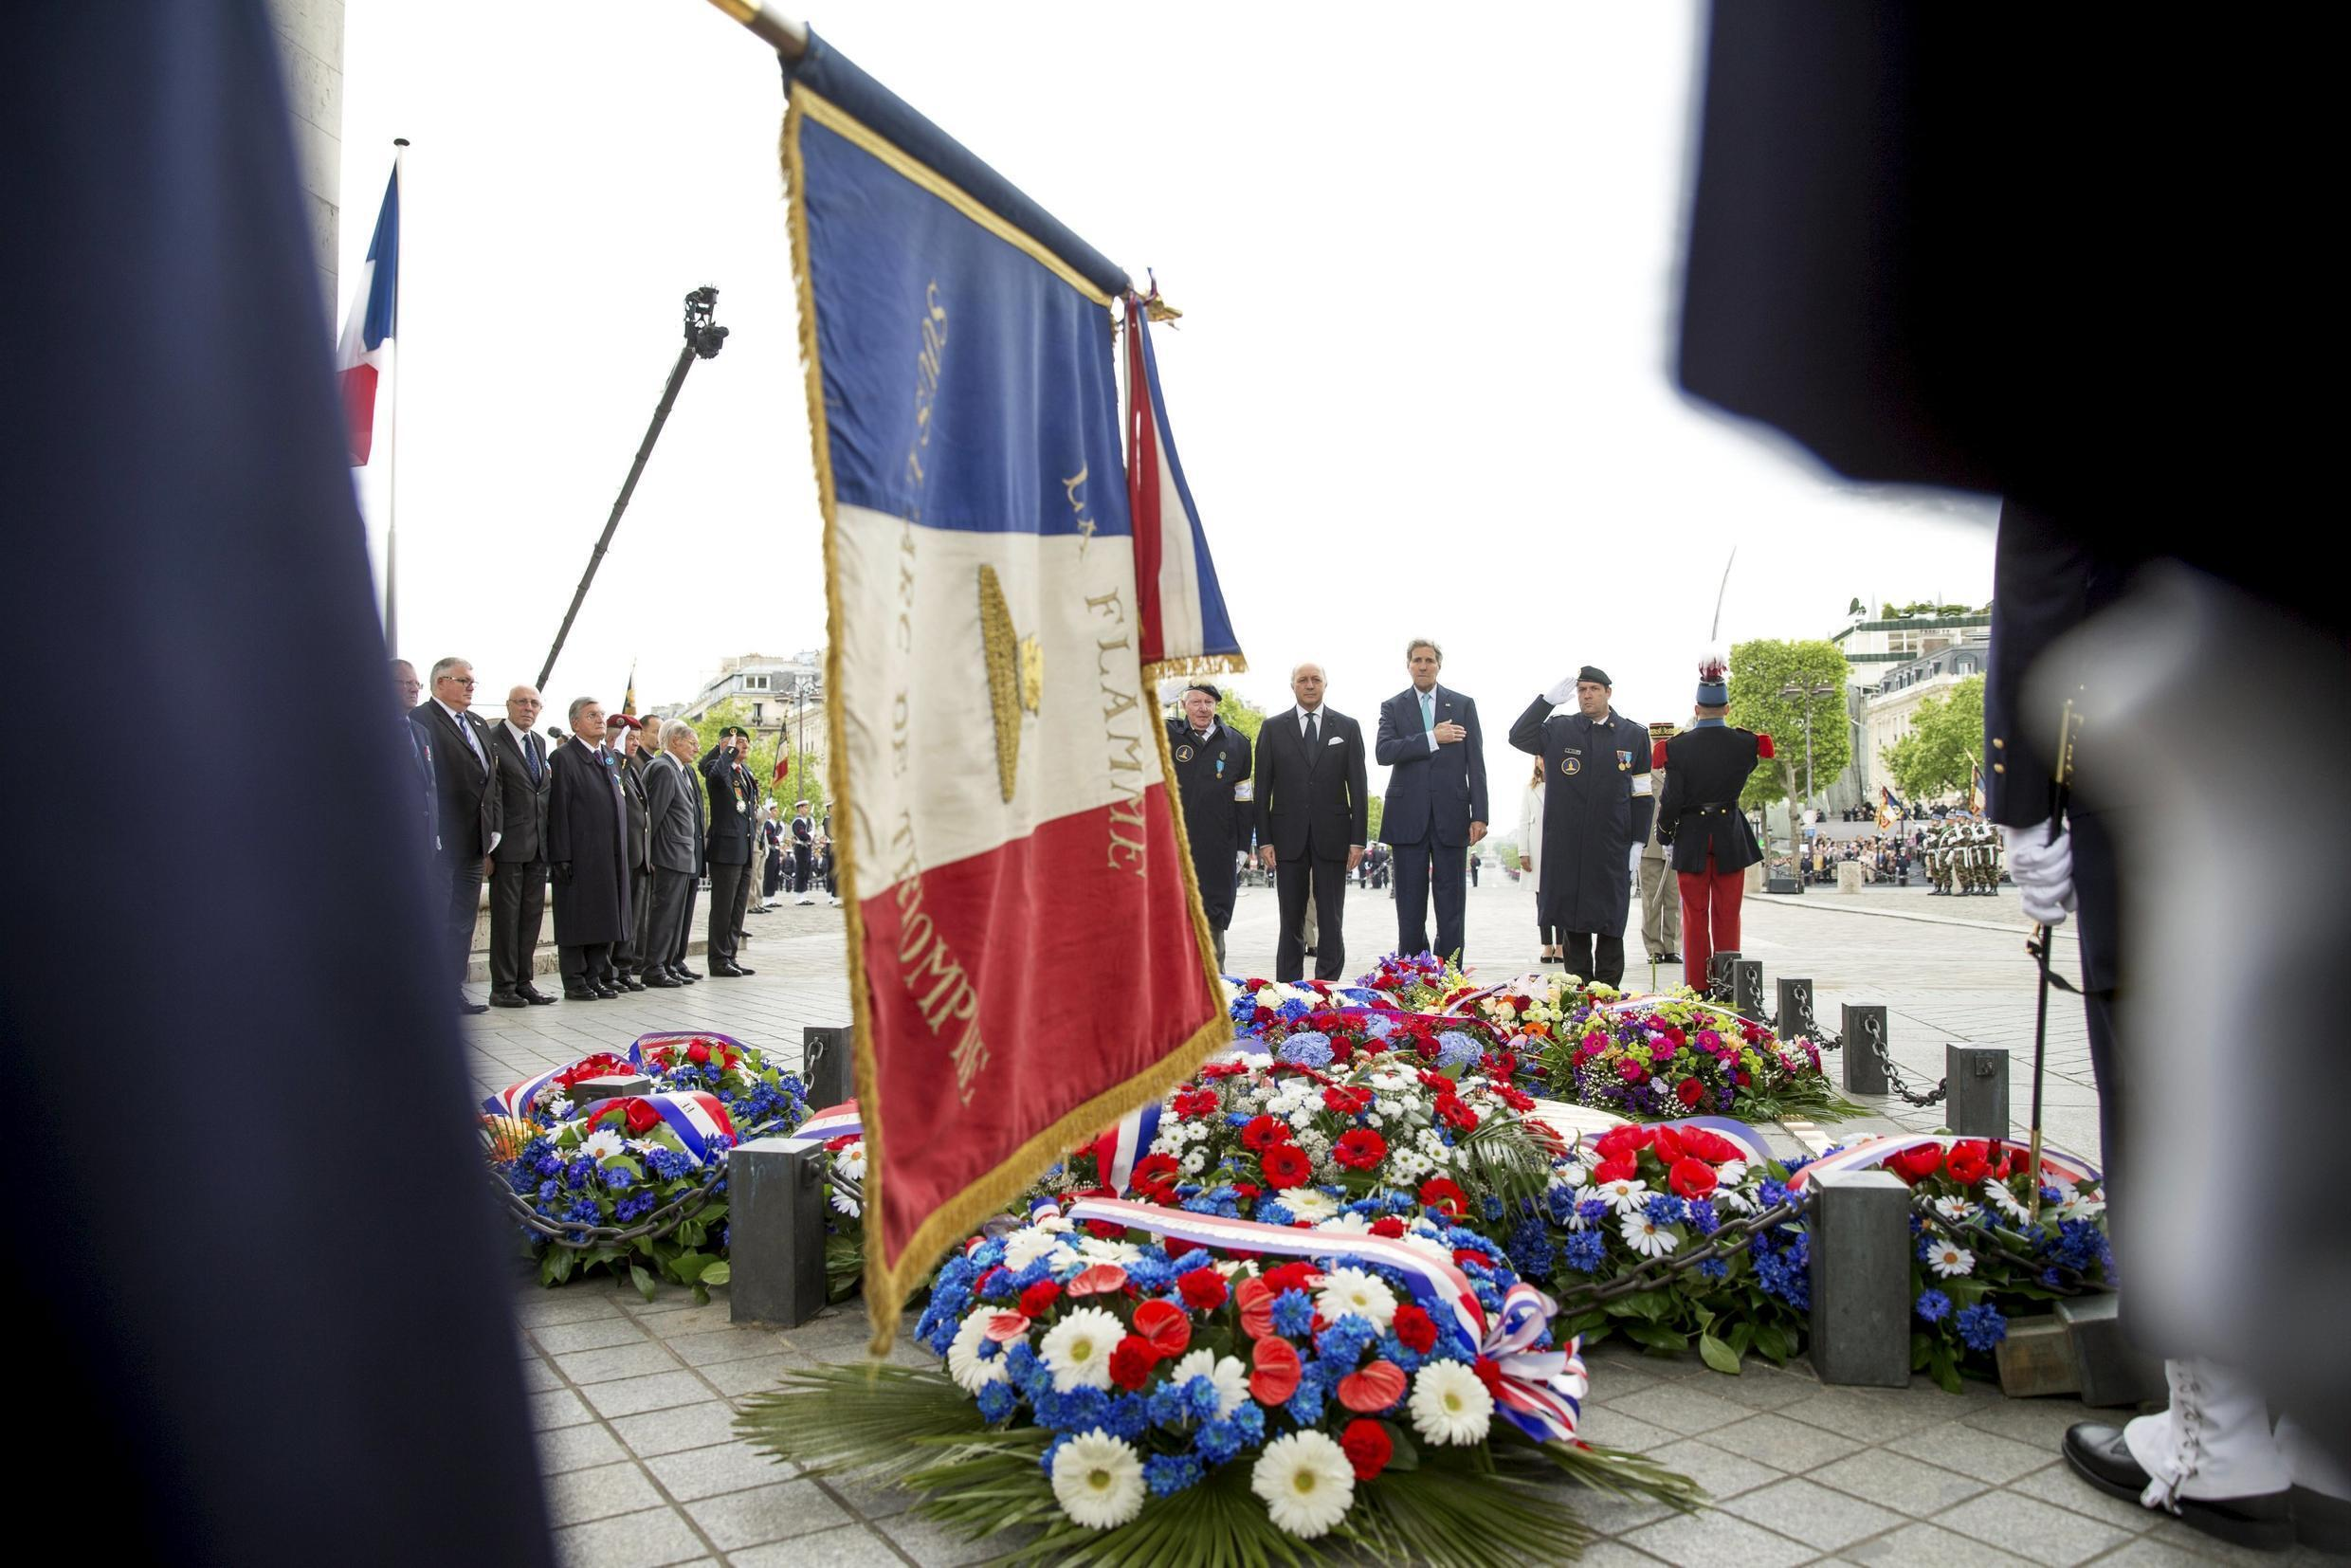 Ceremony marking France's 70th anniversary of the allied victory over Nazi Germany, Paris, 8 May 2015.